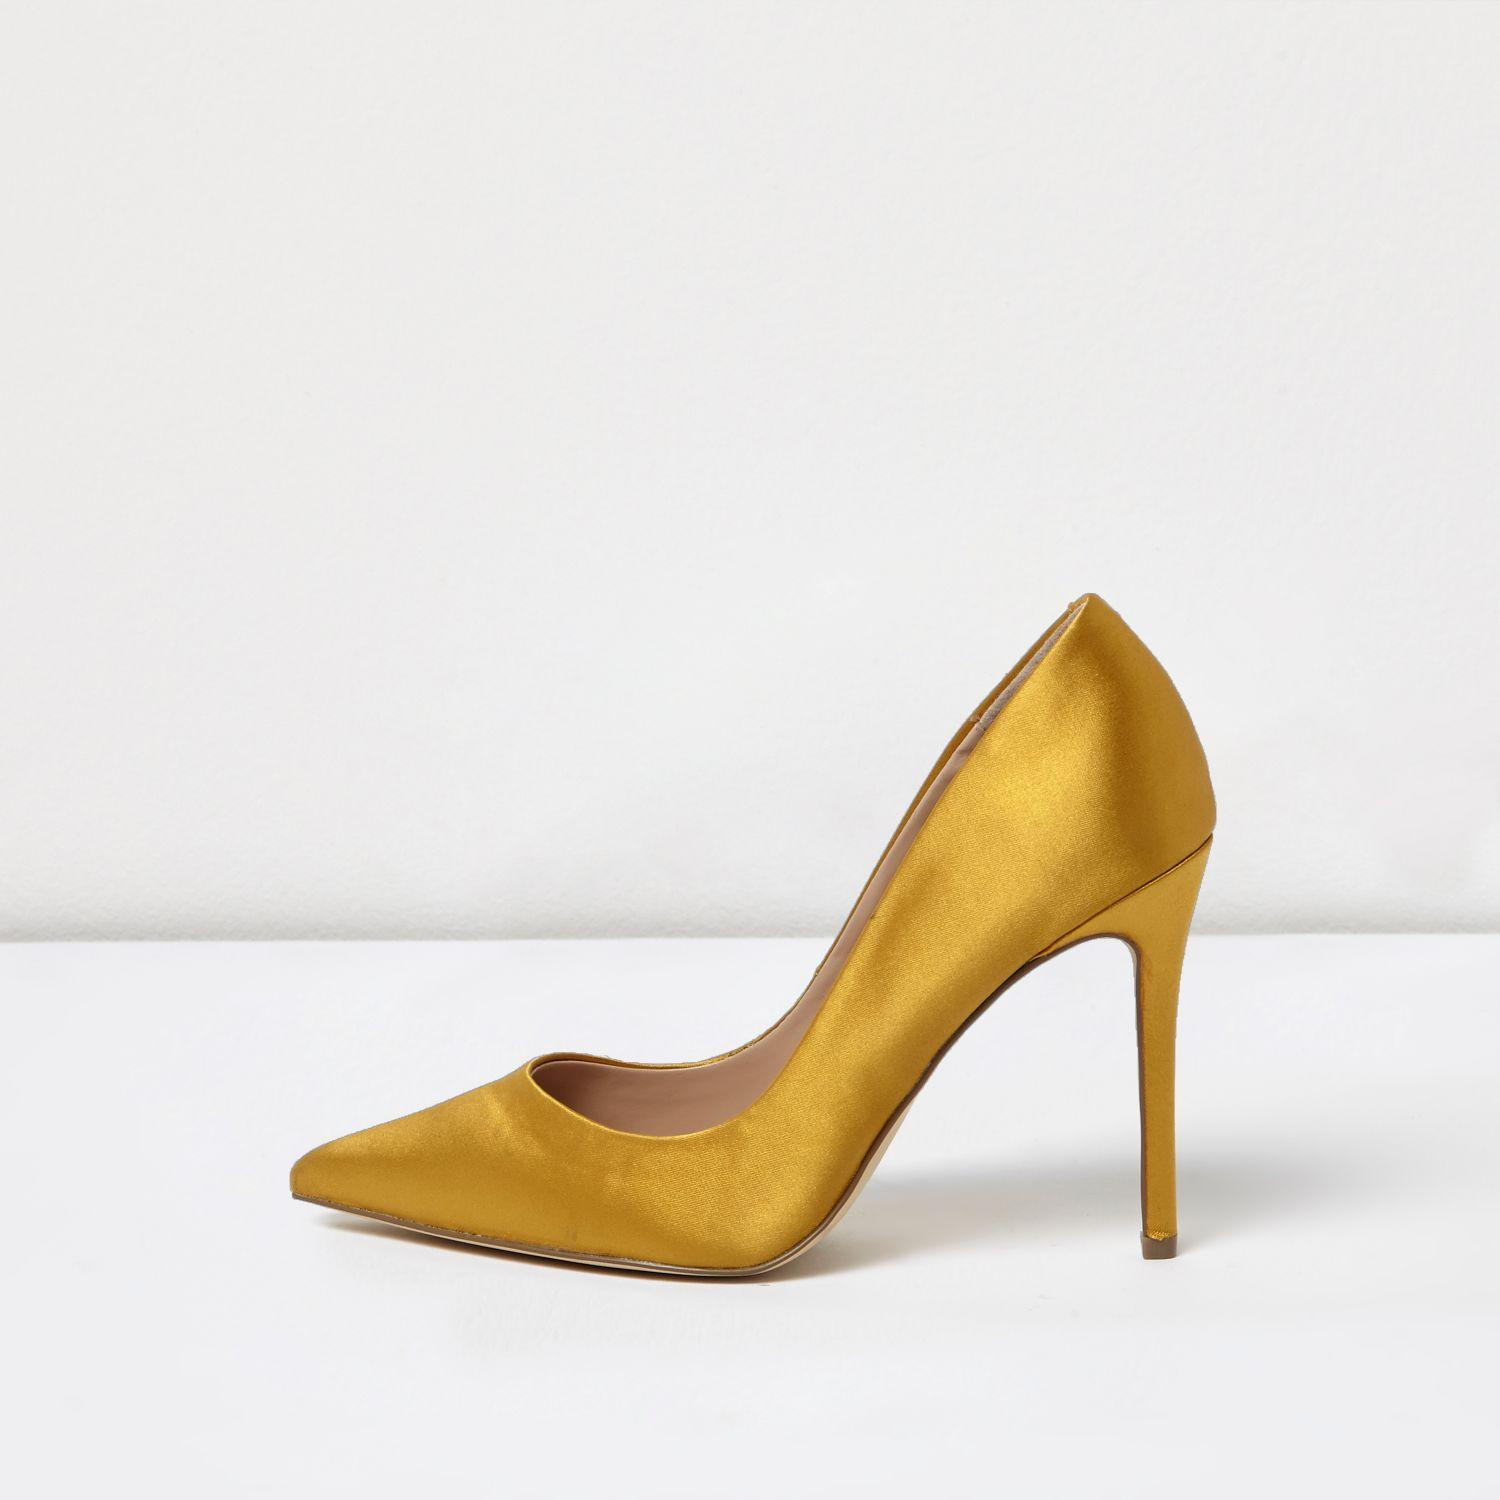 5dfa35065d3 Lyst - River Island Gold Satin Court Shoes in Yellow